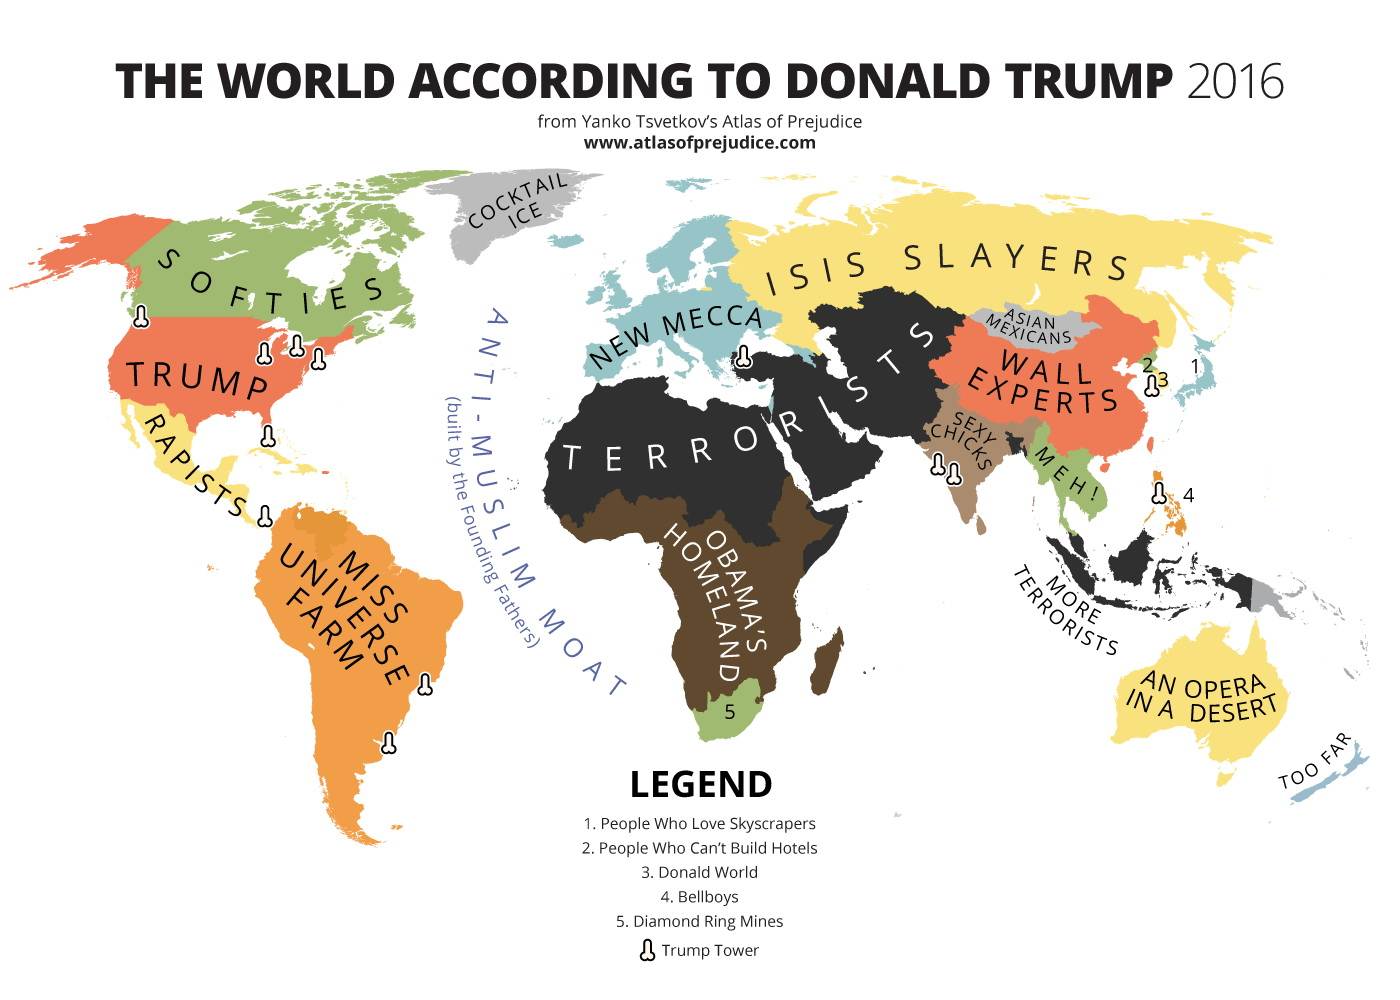 The worlds according to Donald Trump - 2016